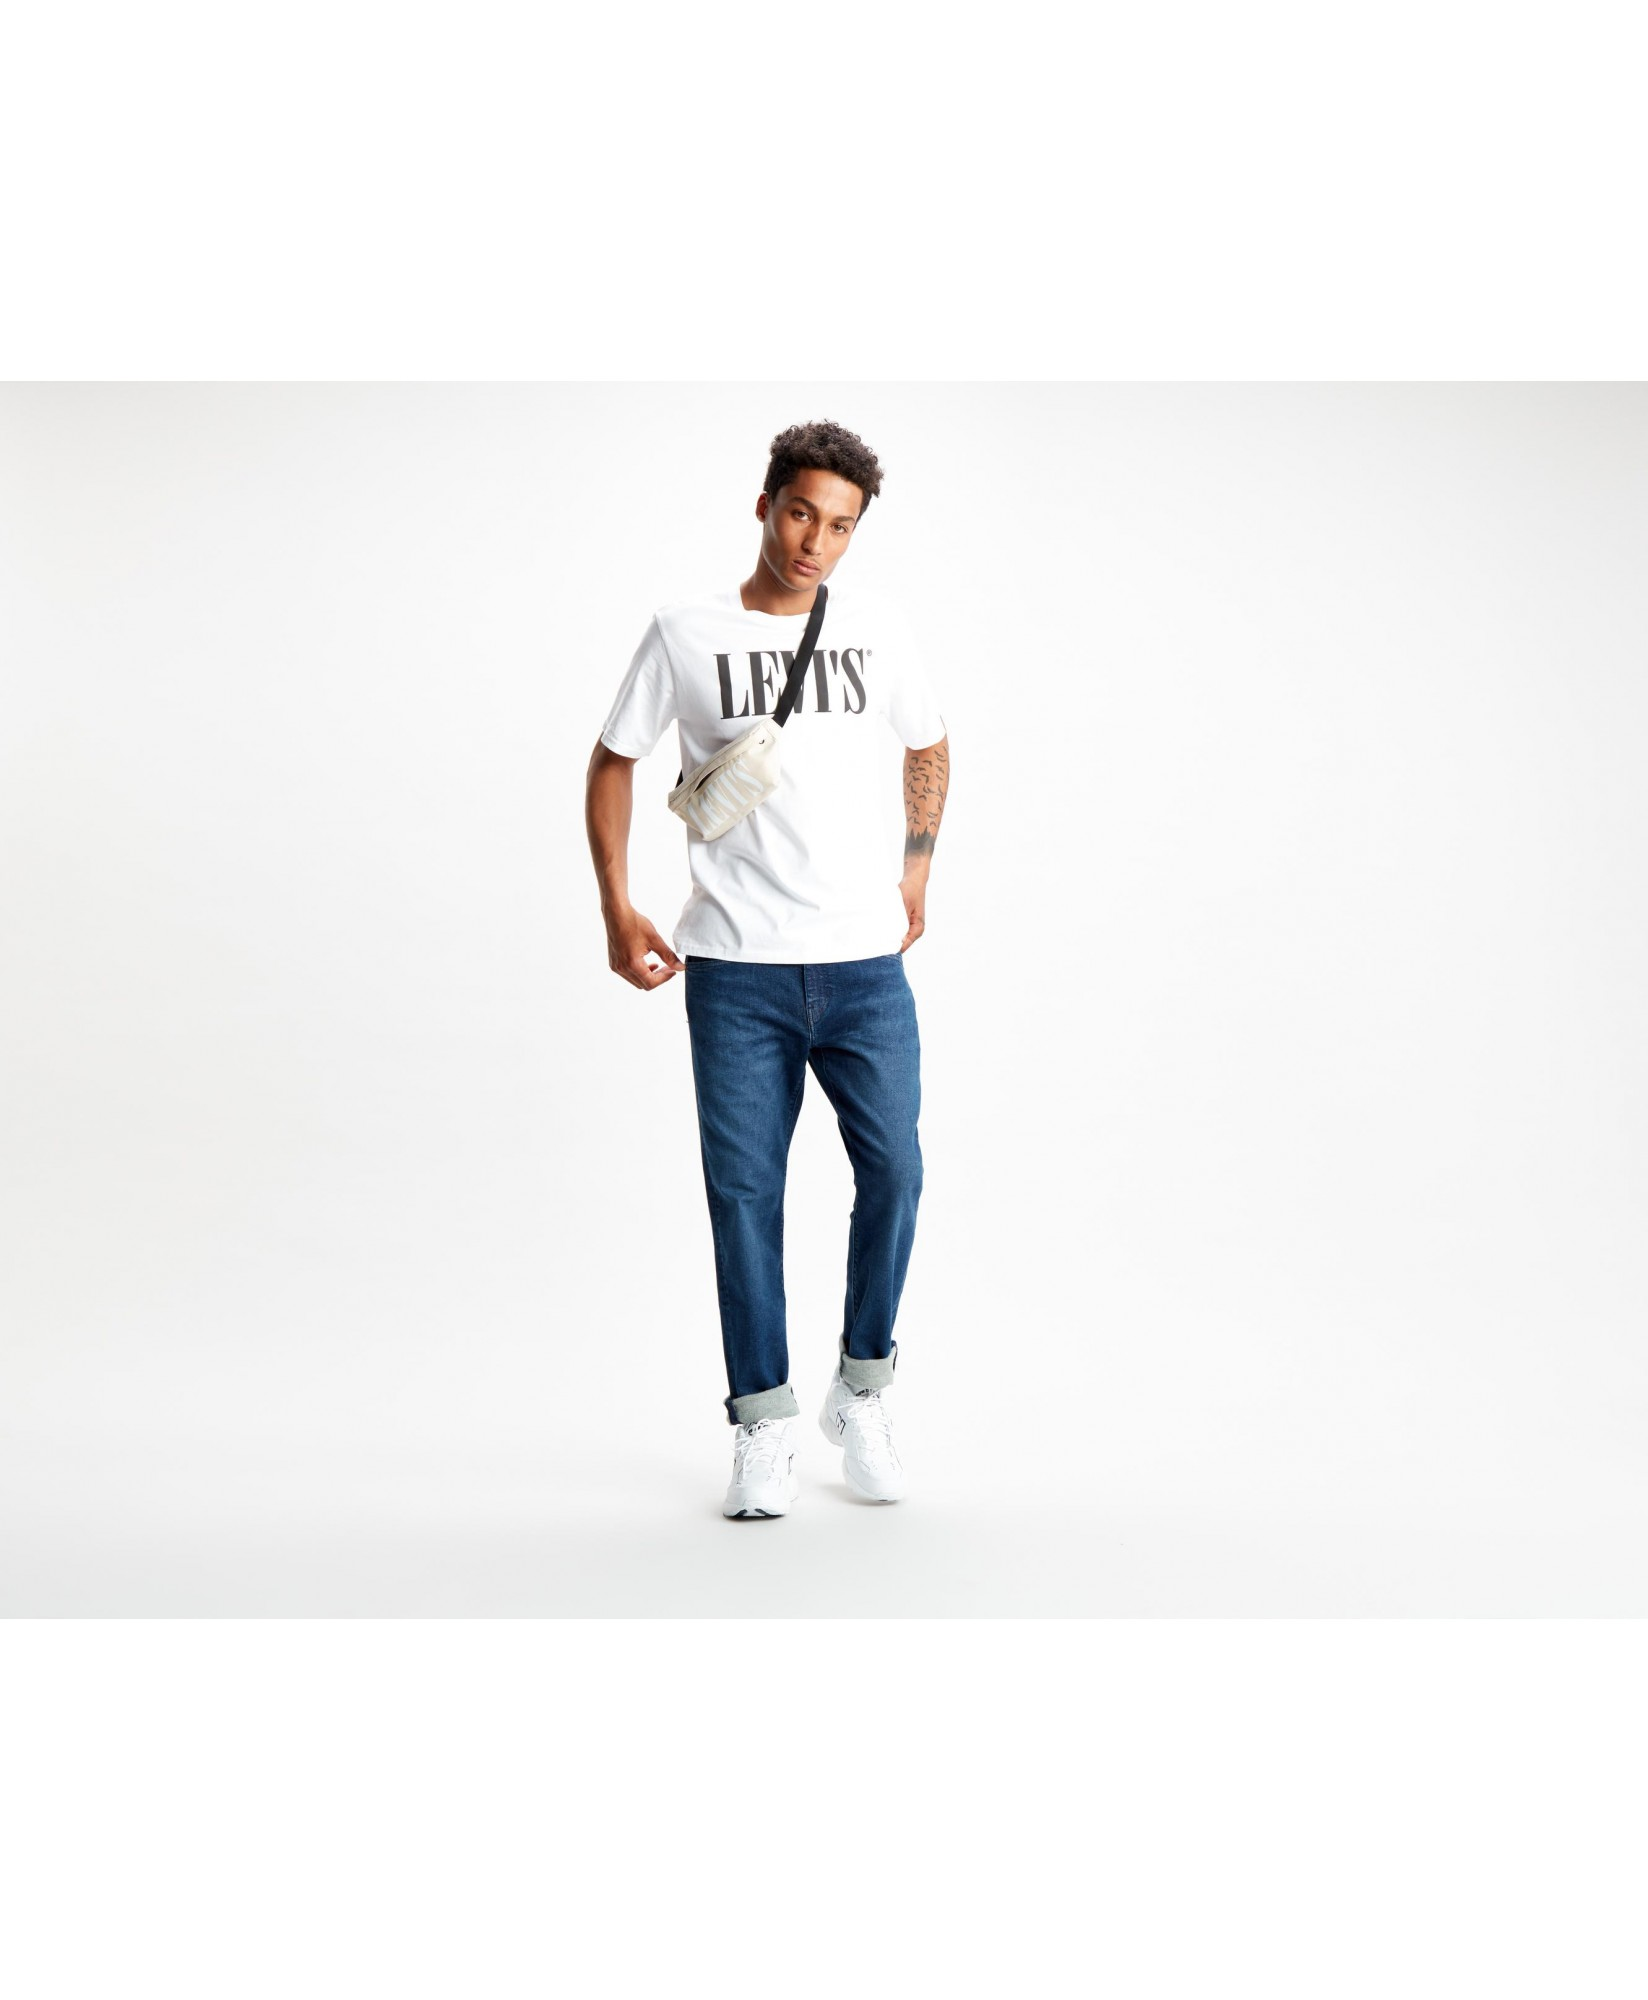 RELAXED GRAPHIC TEE RELAXED GRAPHIC TEE